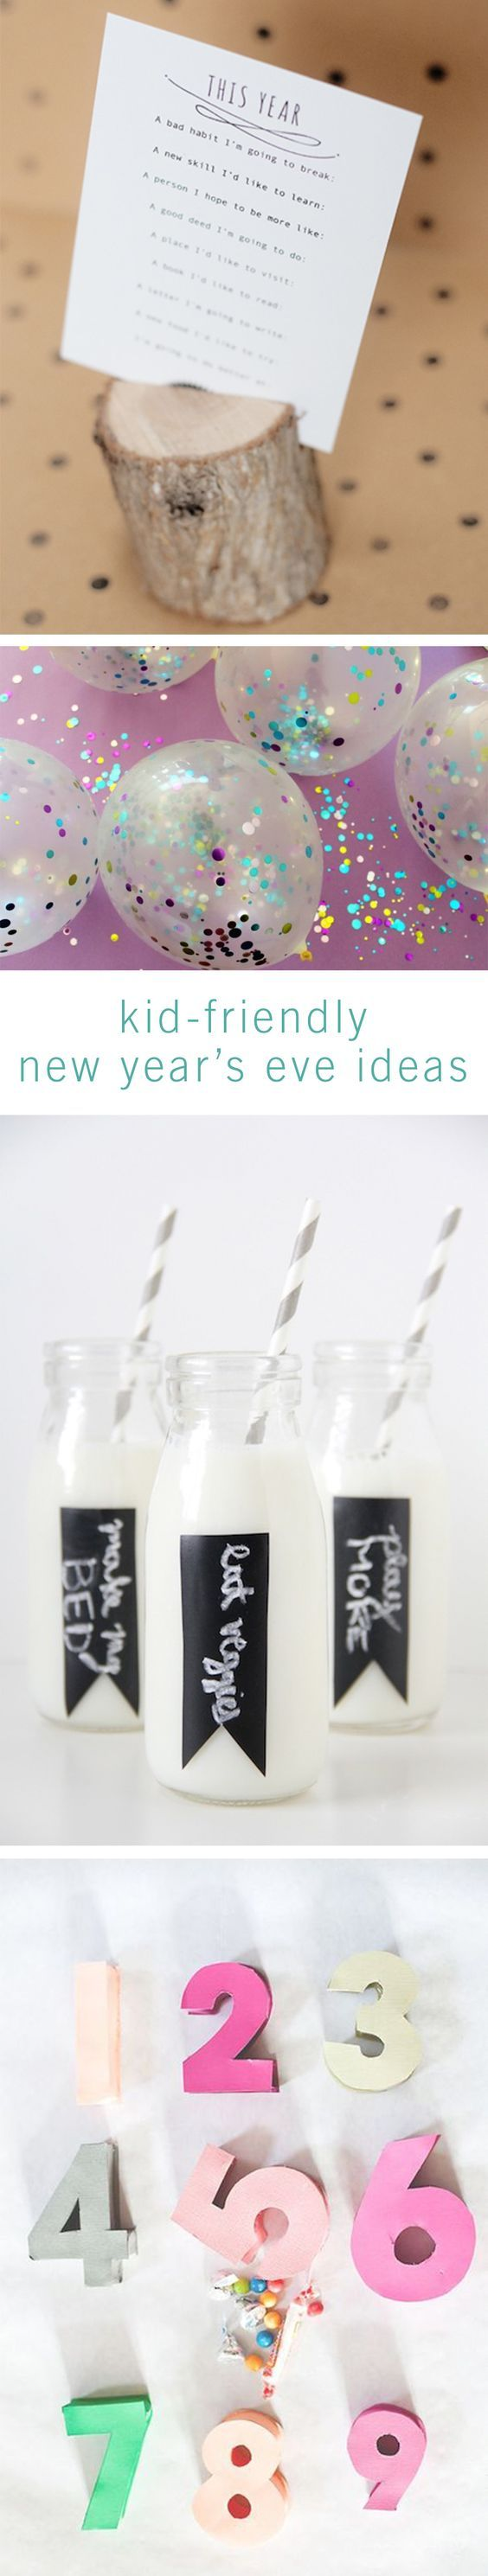 57 best HOLIDAYS: New Year\'s Eve images on Pinterest | New years eve ...